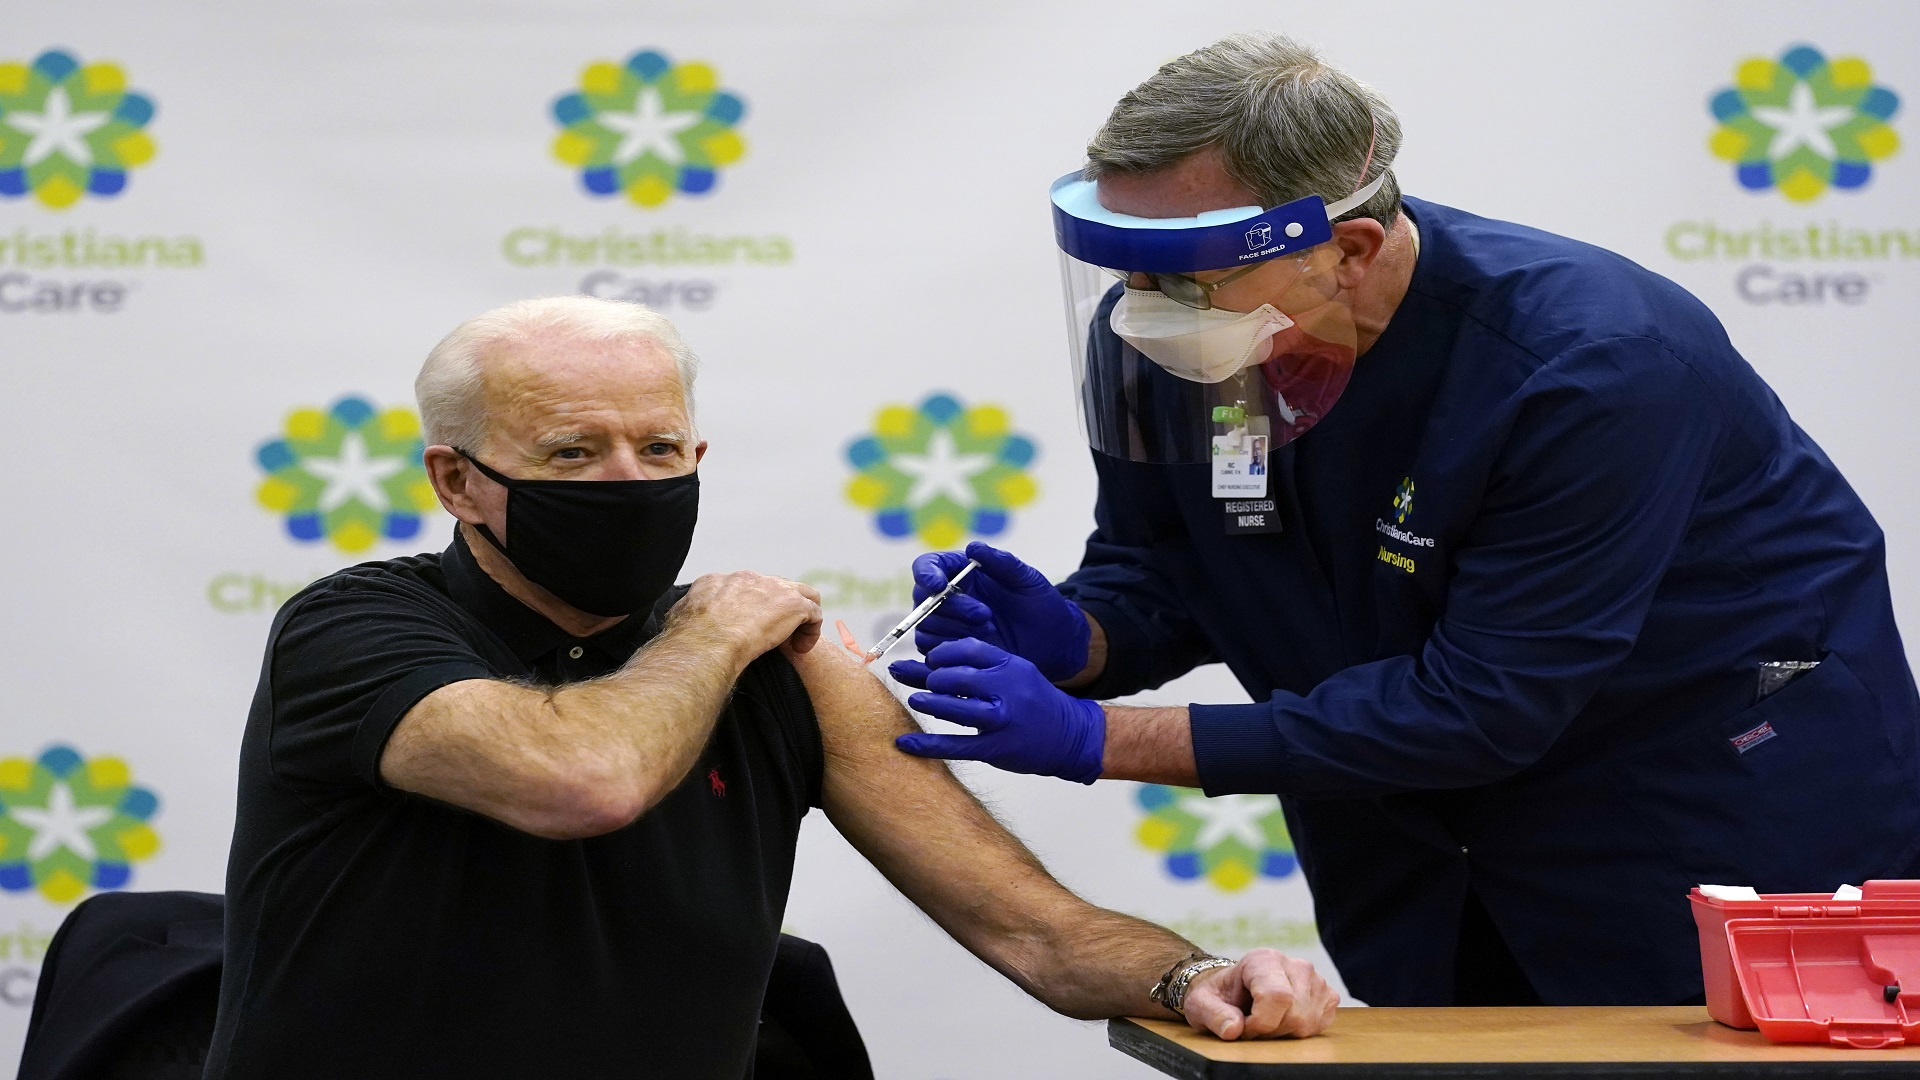 Biden gets 2nd dose of vaccine as team readies COVID-19 plan